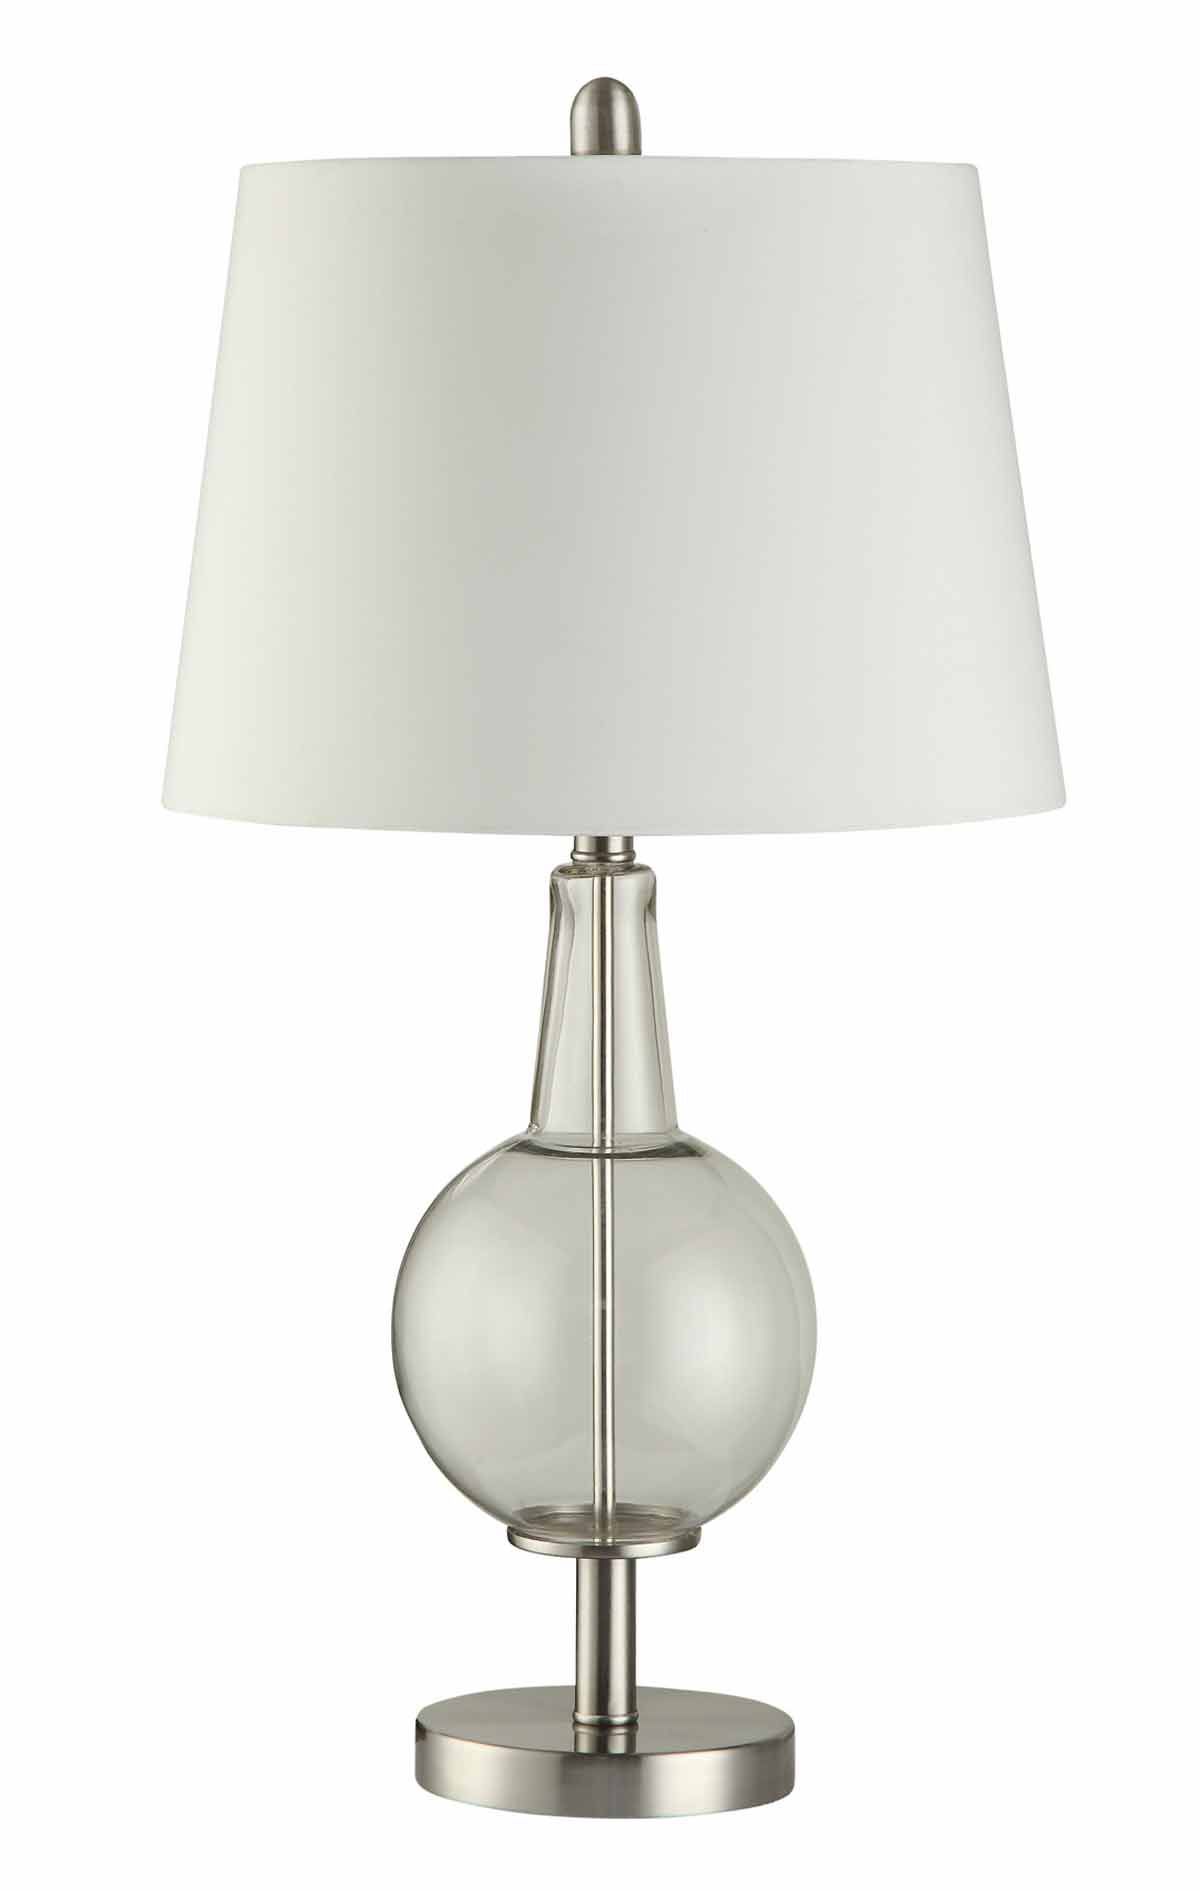 Coaster 901519 Table Lamp - Clear